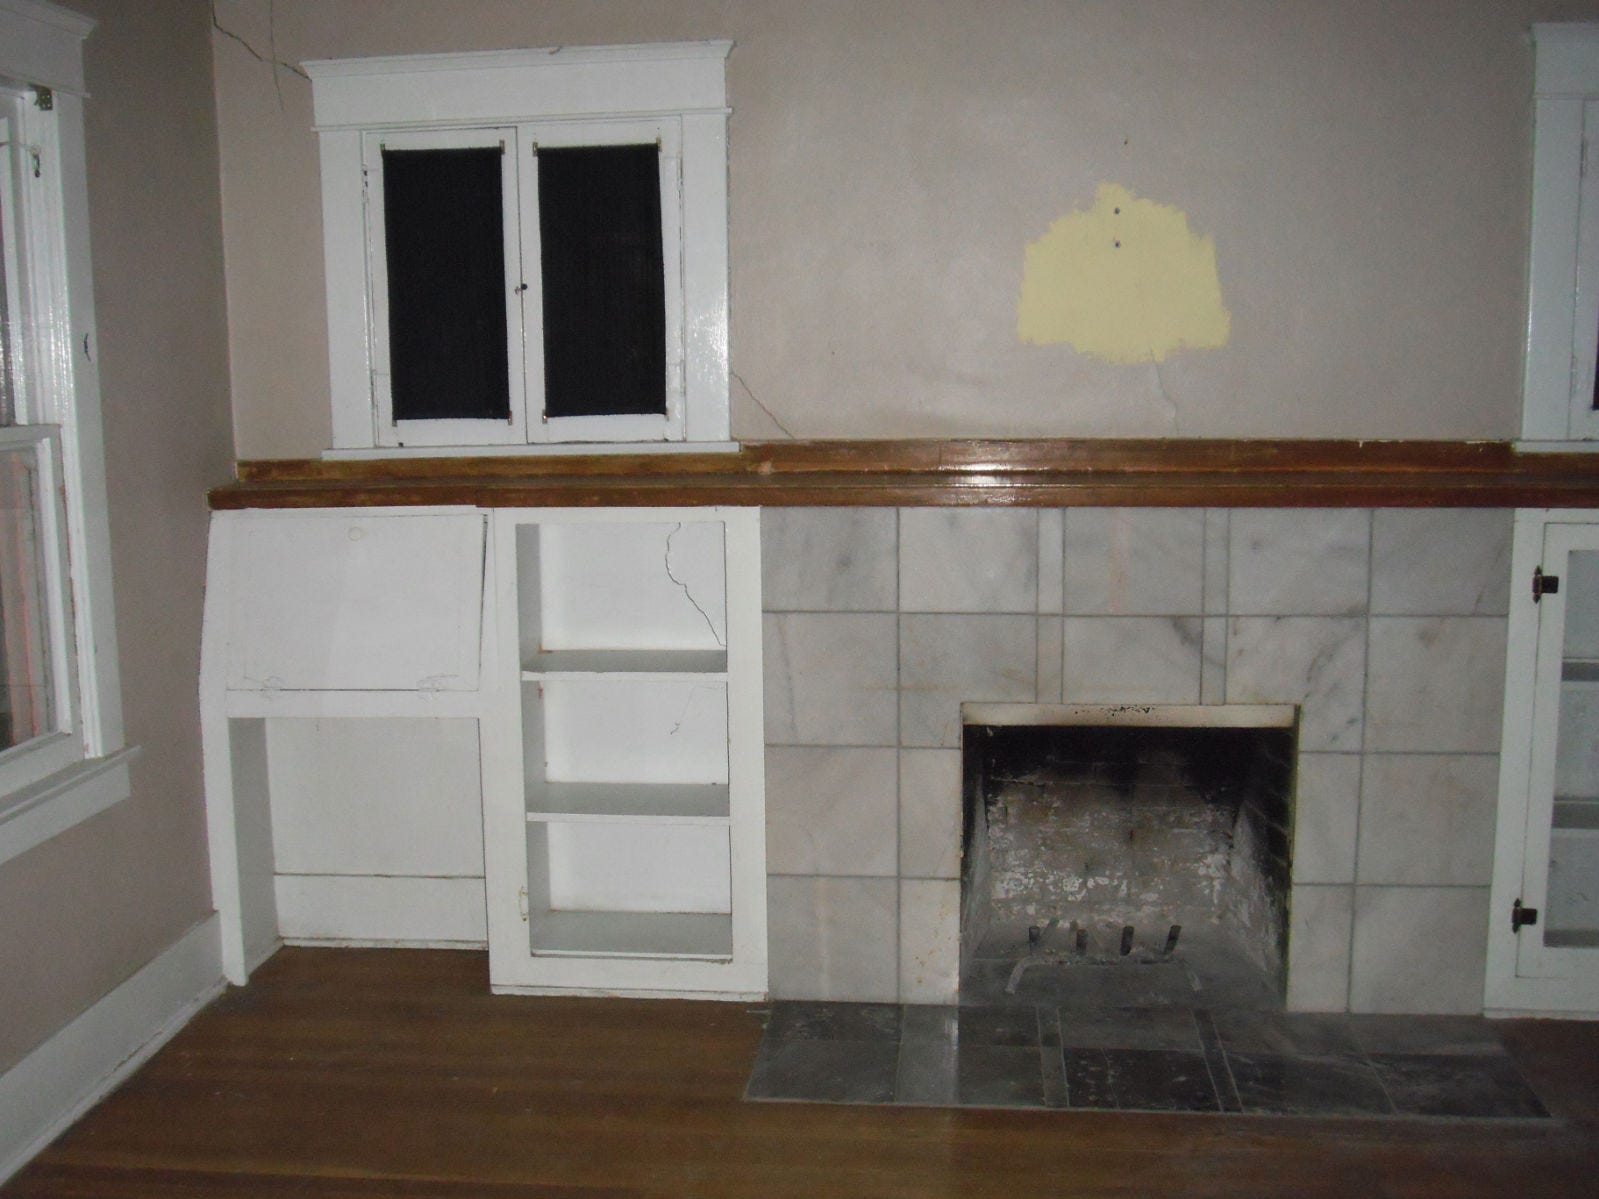 2010 picture of the living room prior to restoration.